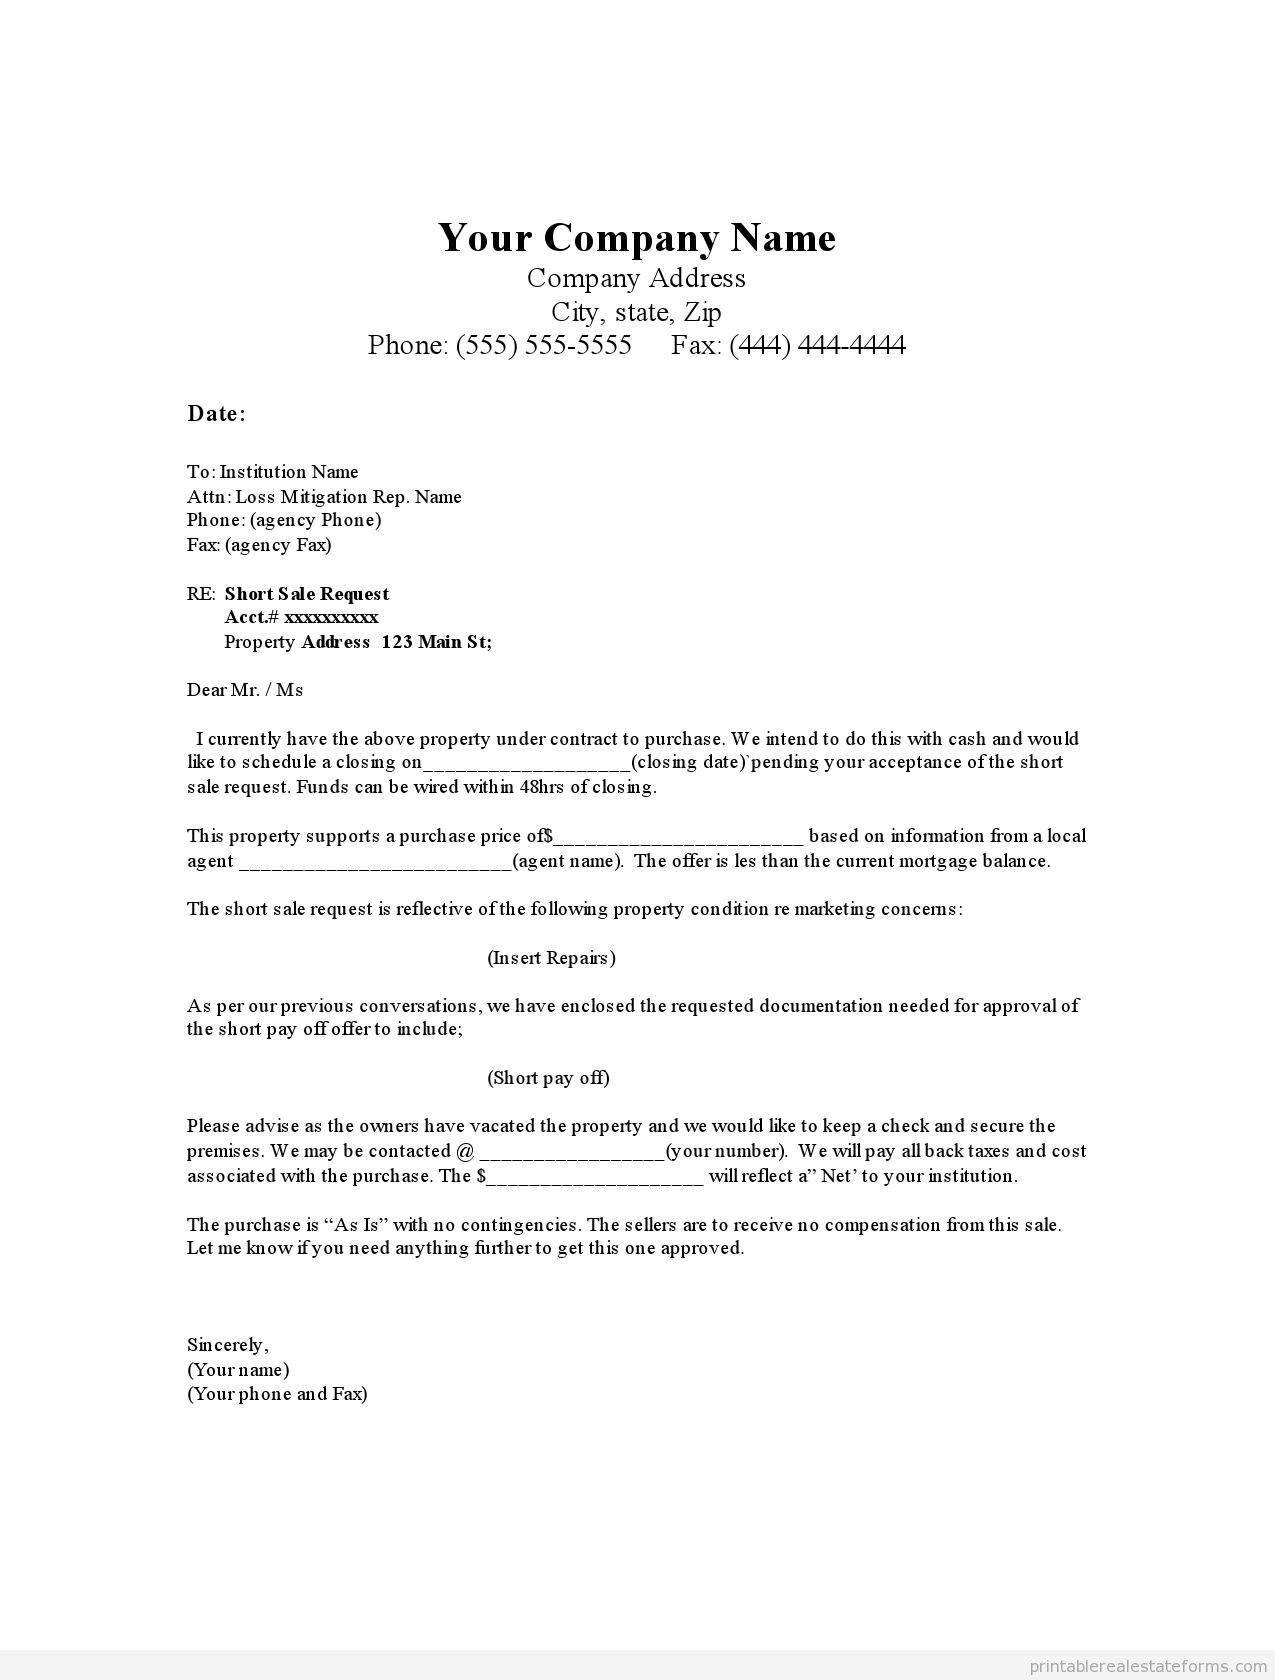 home purchase offer letter template Collection-Home Fer Letter Template Home fer Letter Sample Ideas 17-g